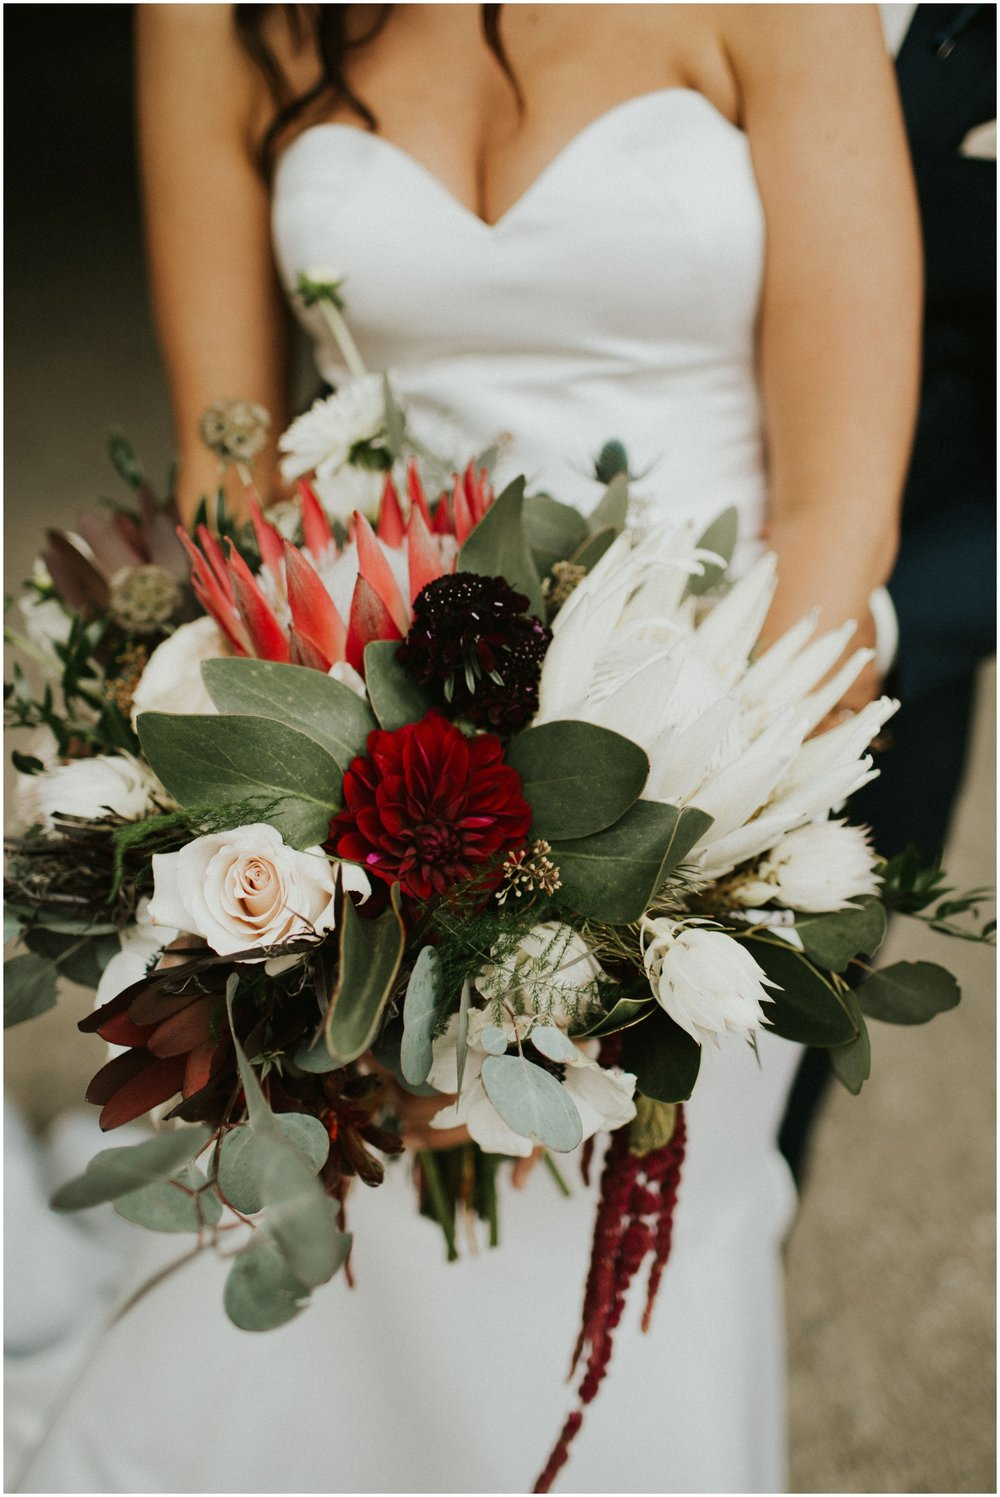 Bride's bridal bouquet